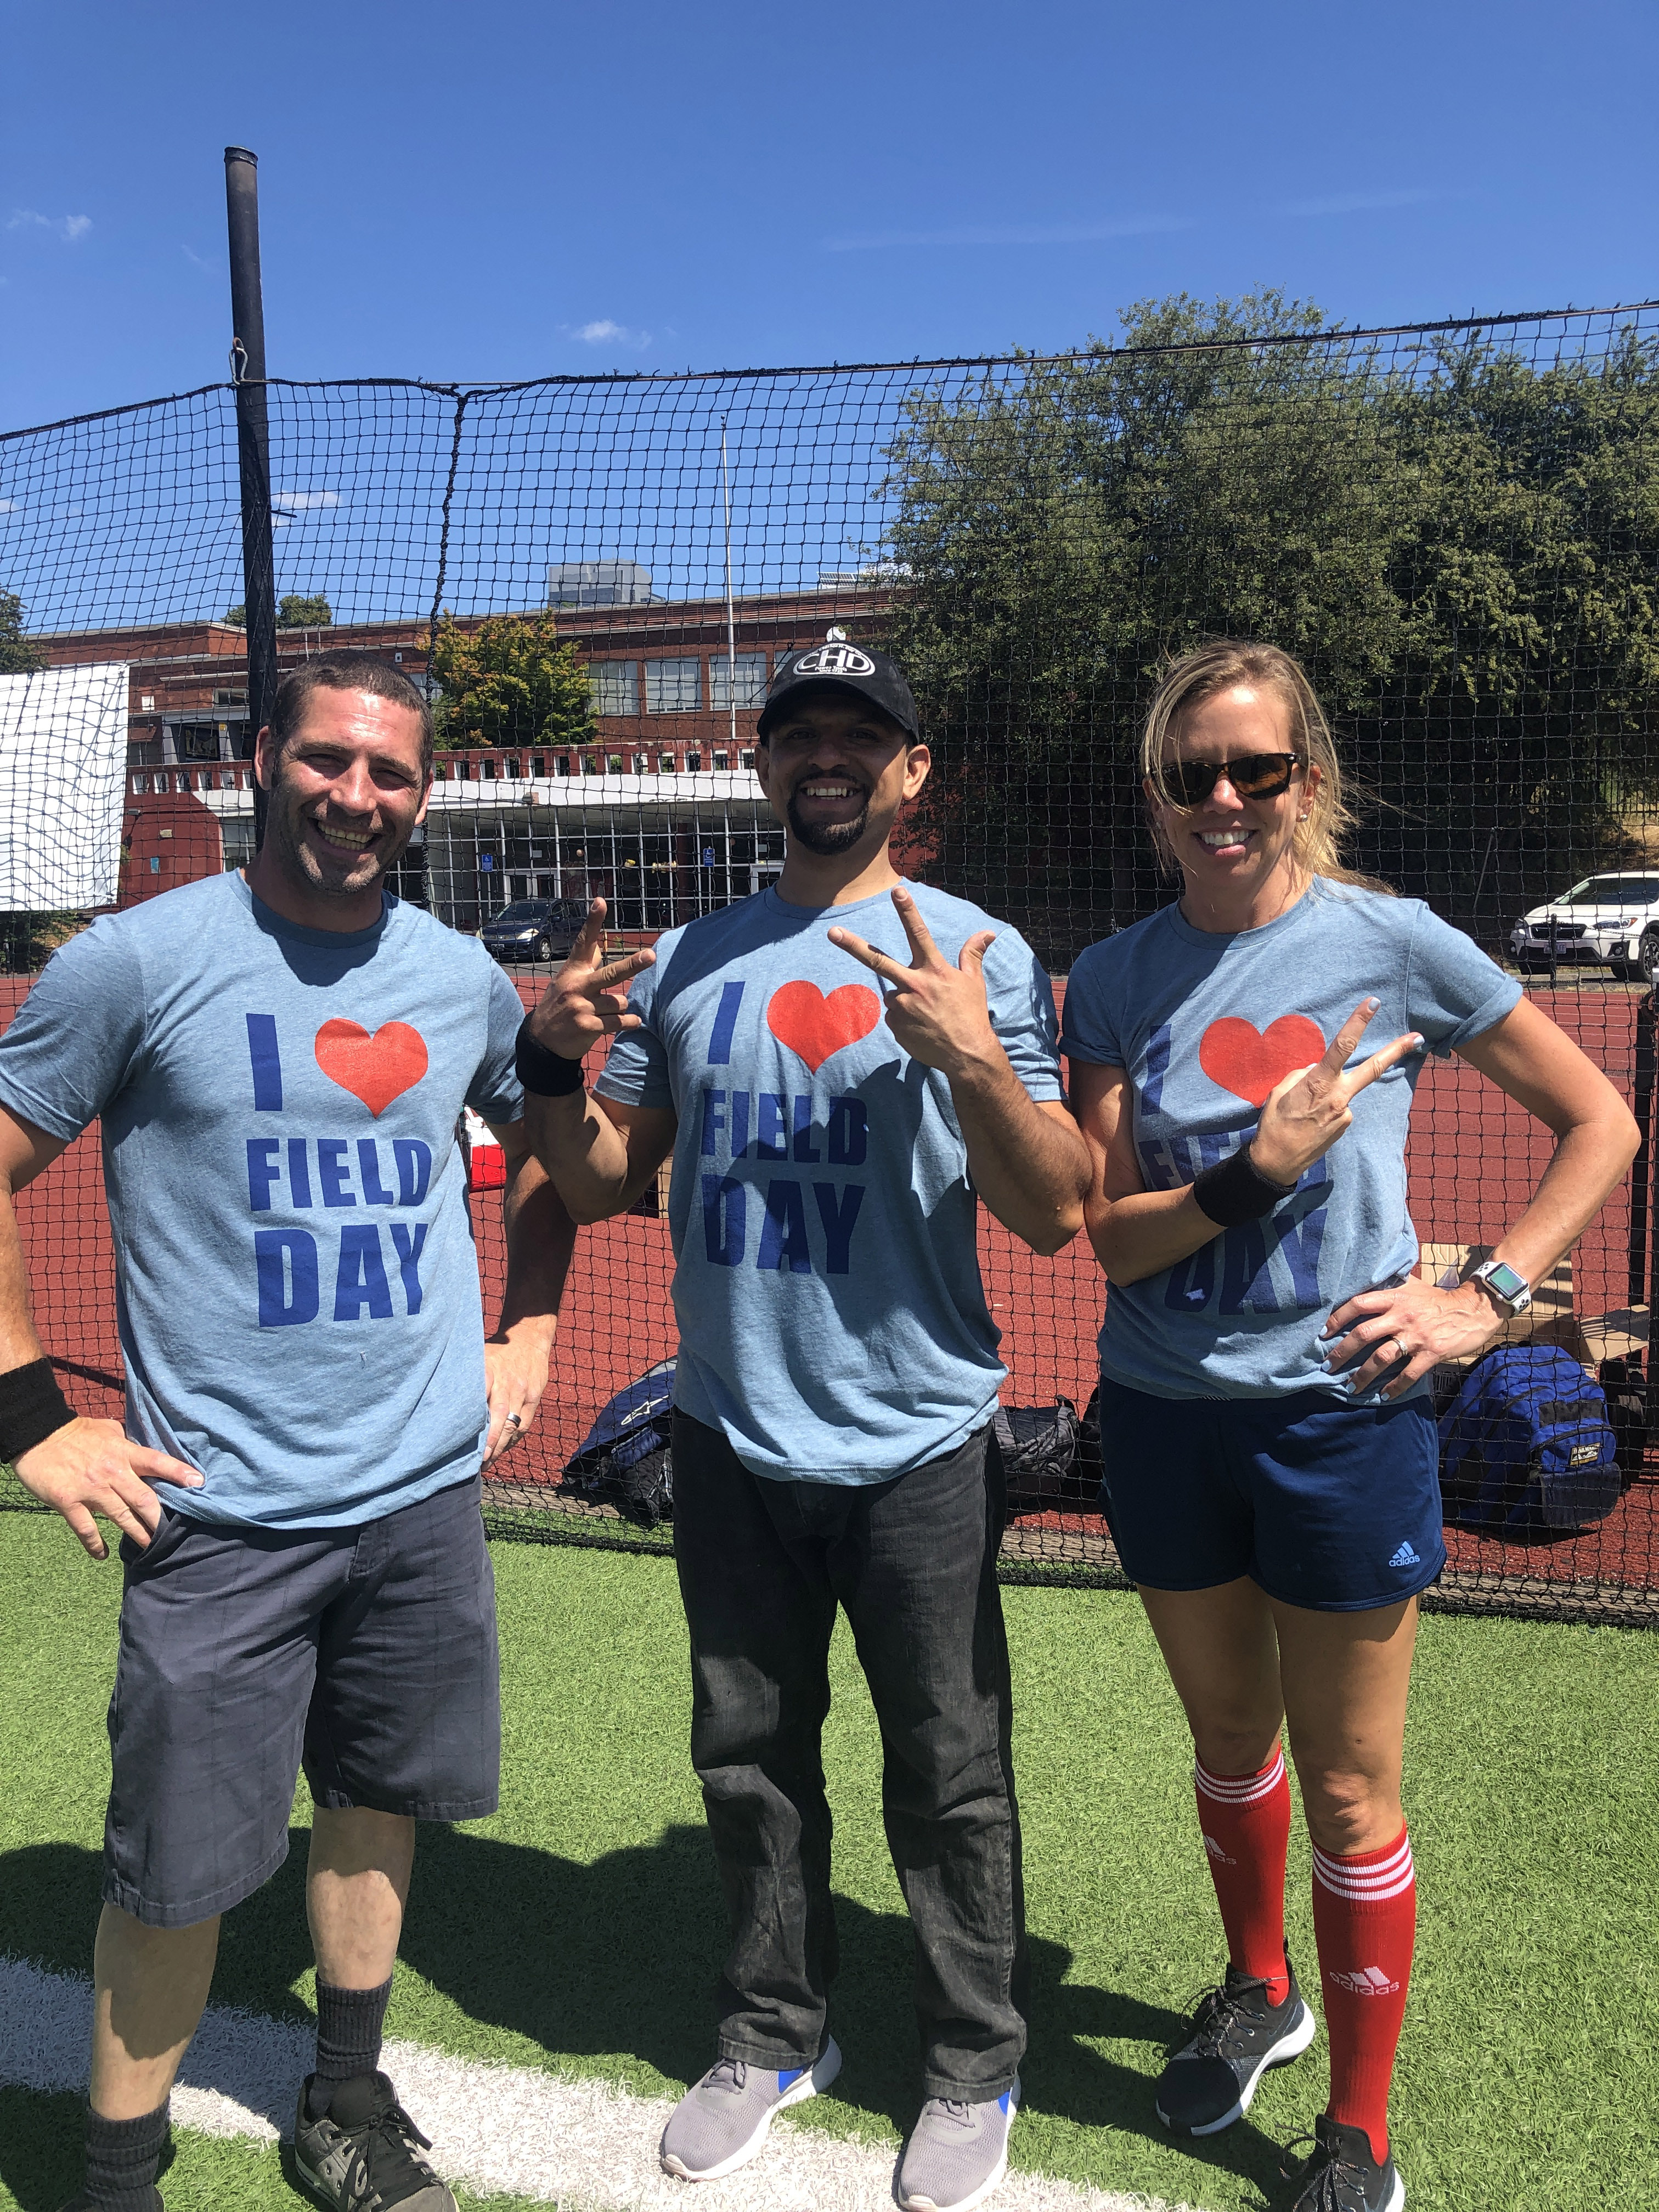 Three R&H employees posing in custom t-shirts for R&H field day on the football field